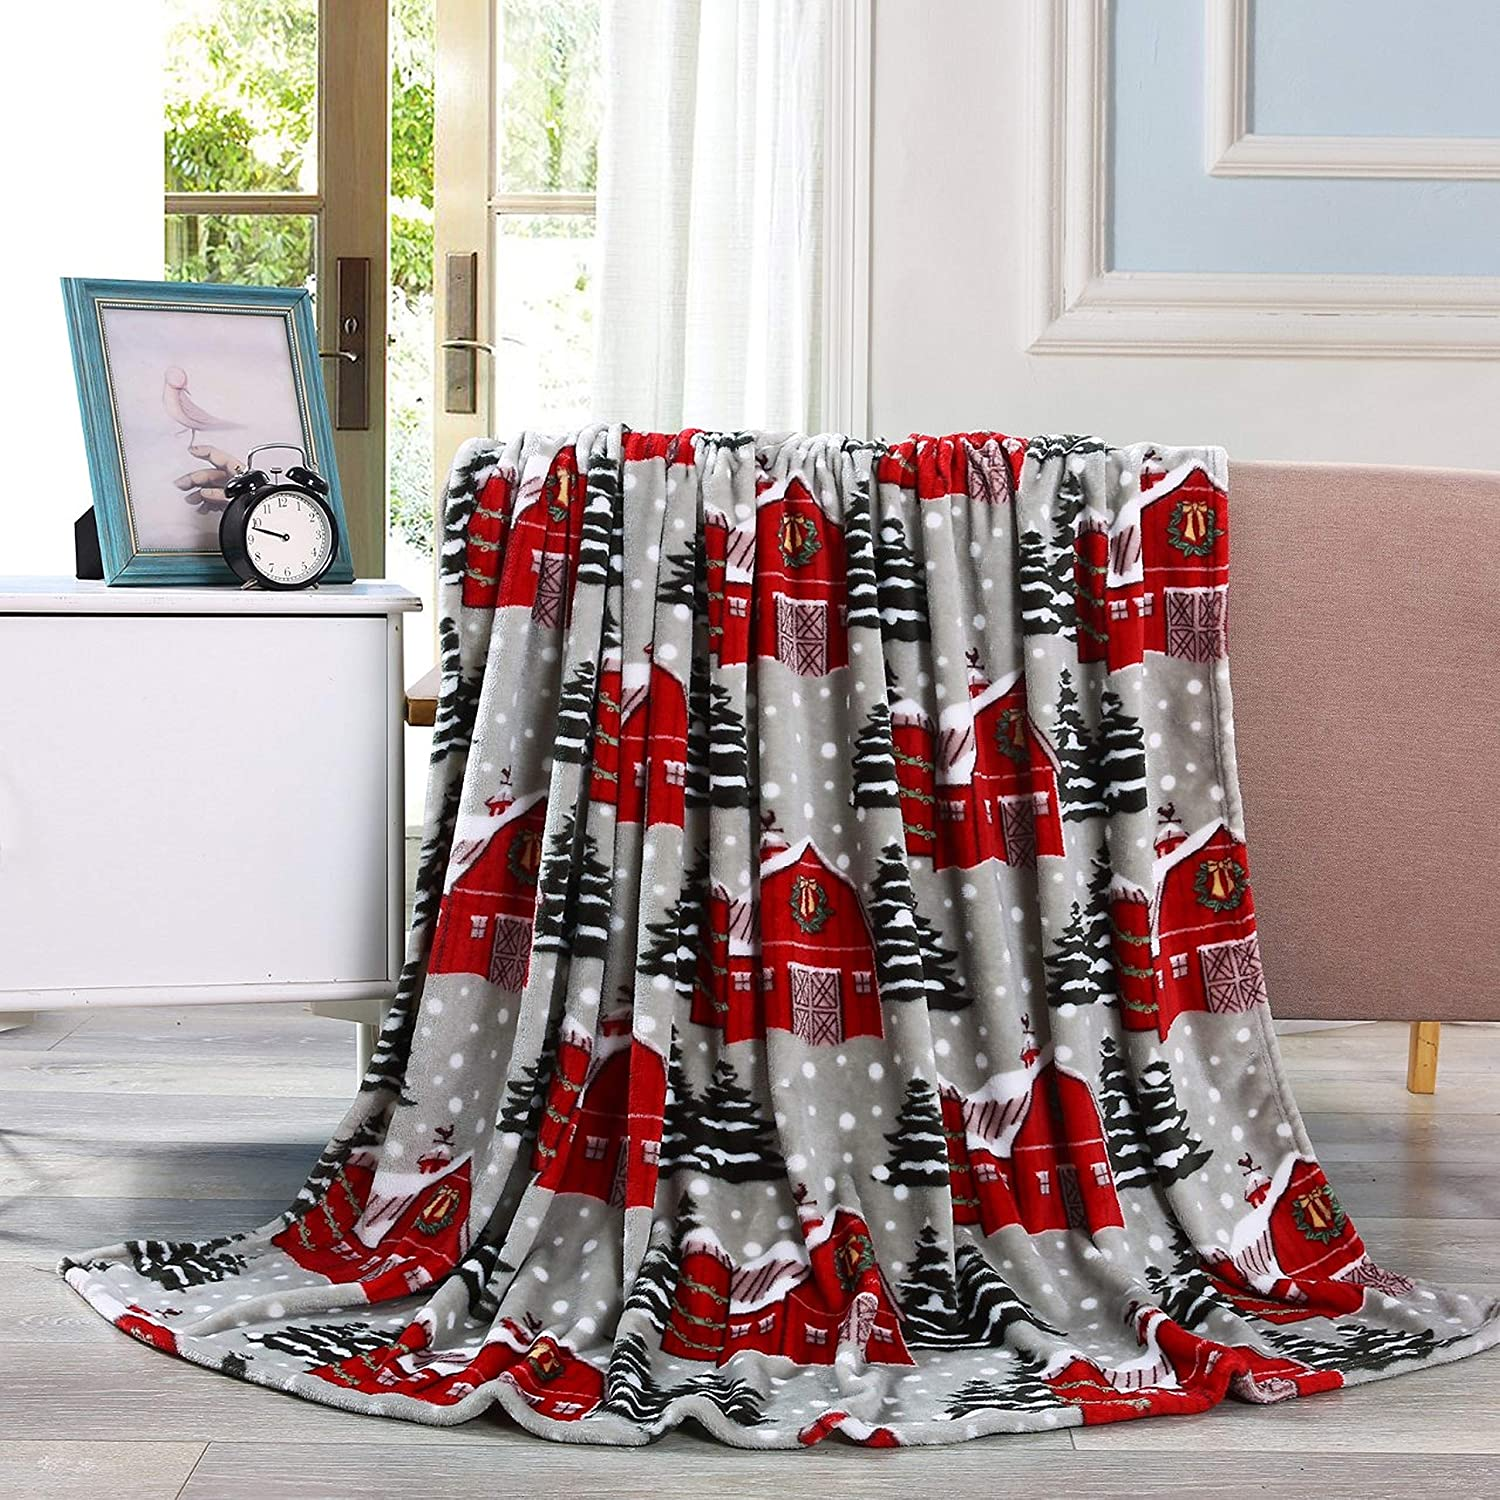 Blankets Quilts 50 X 60inch Cozy Holiday Printed Fleece Throw Blanket Warm Valerian Luxury Velvet Touch Ultra Plush Christmas Blanket Soft Home Dccbjagdalpur Com